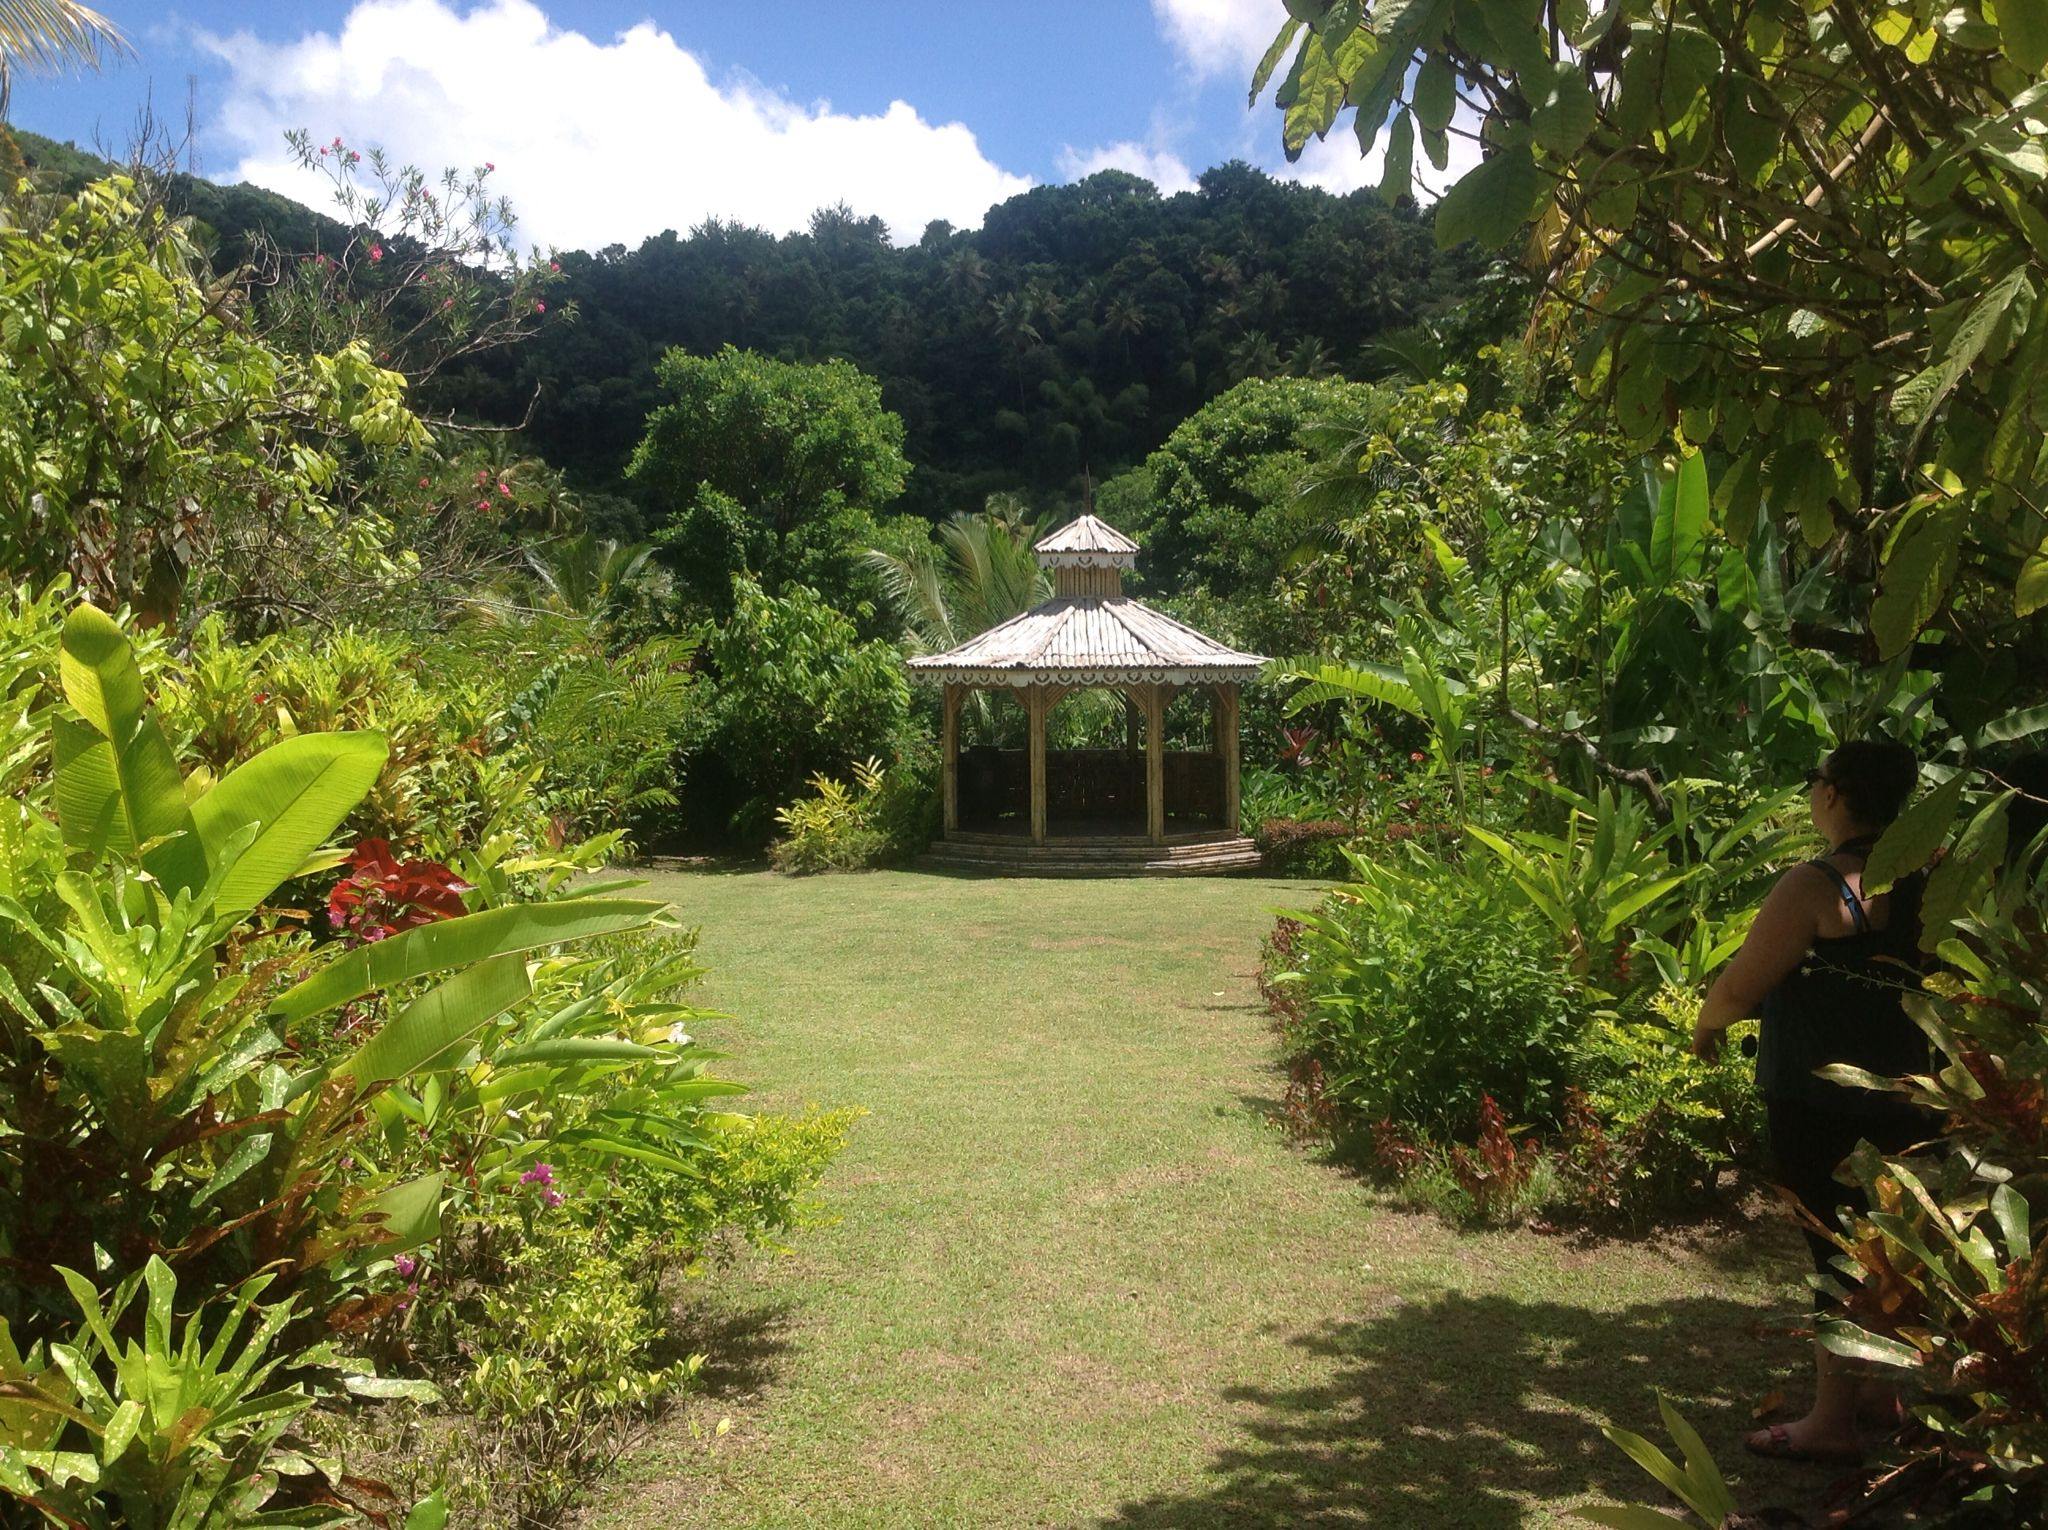 Gazebo at Fon Doux Resort and Plantation just outside of Soufriere St. Lucia